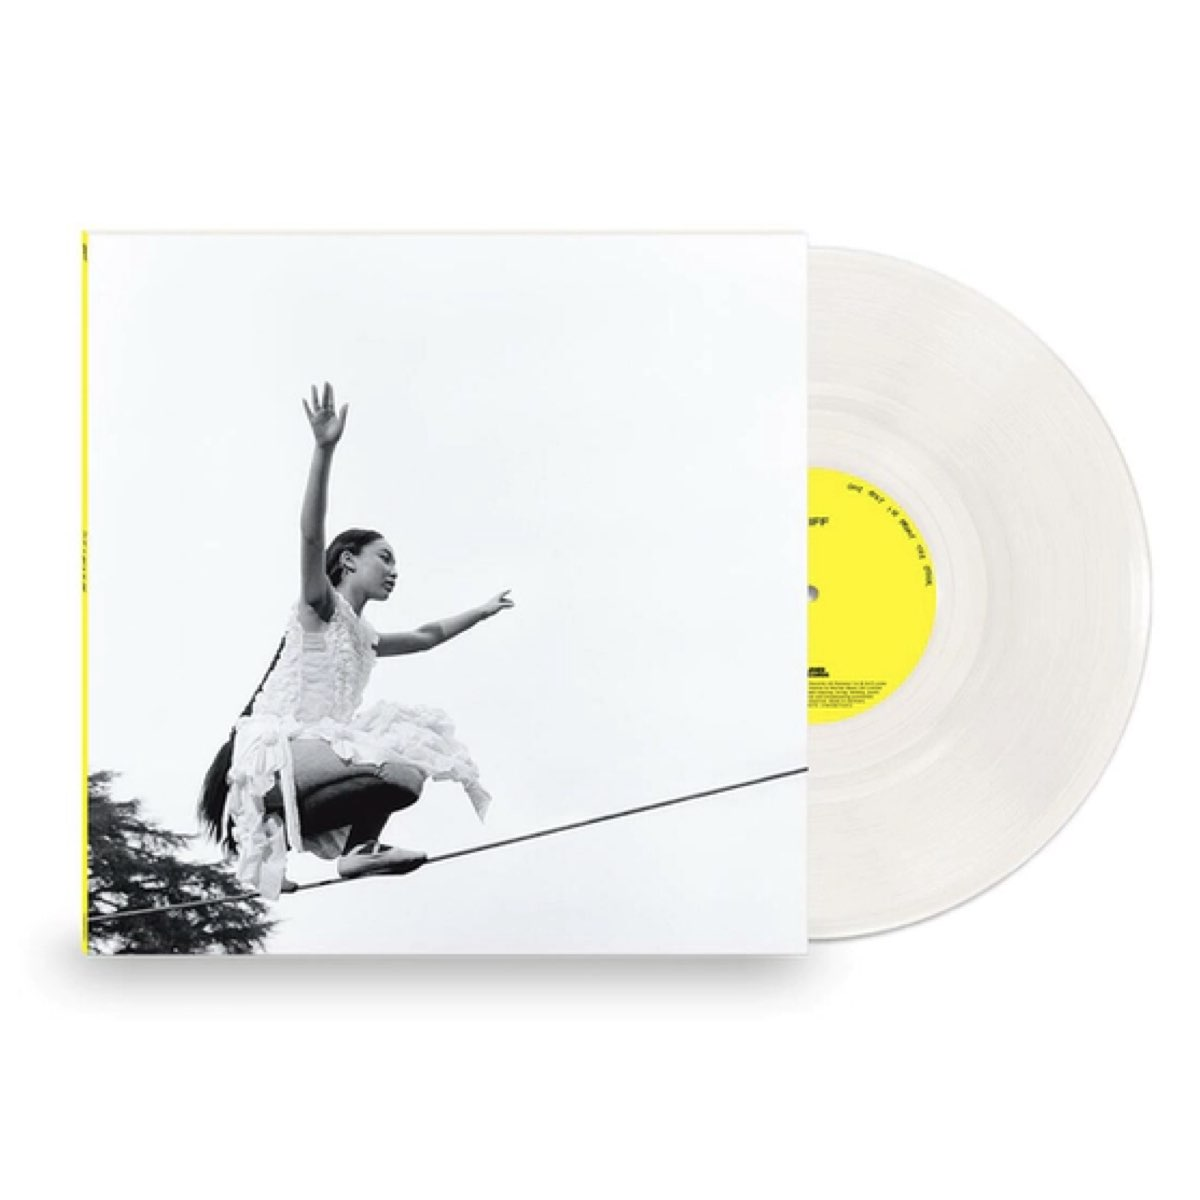 OUTLET - Griff - One Foot In Front Of The Other [Limited Edition - Clear Vinyl] - PEQUENA AVARIA - LEIA A DESCRIÇÃO